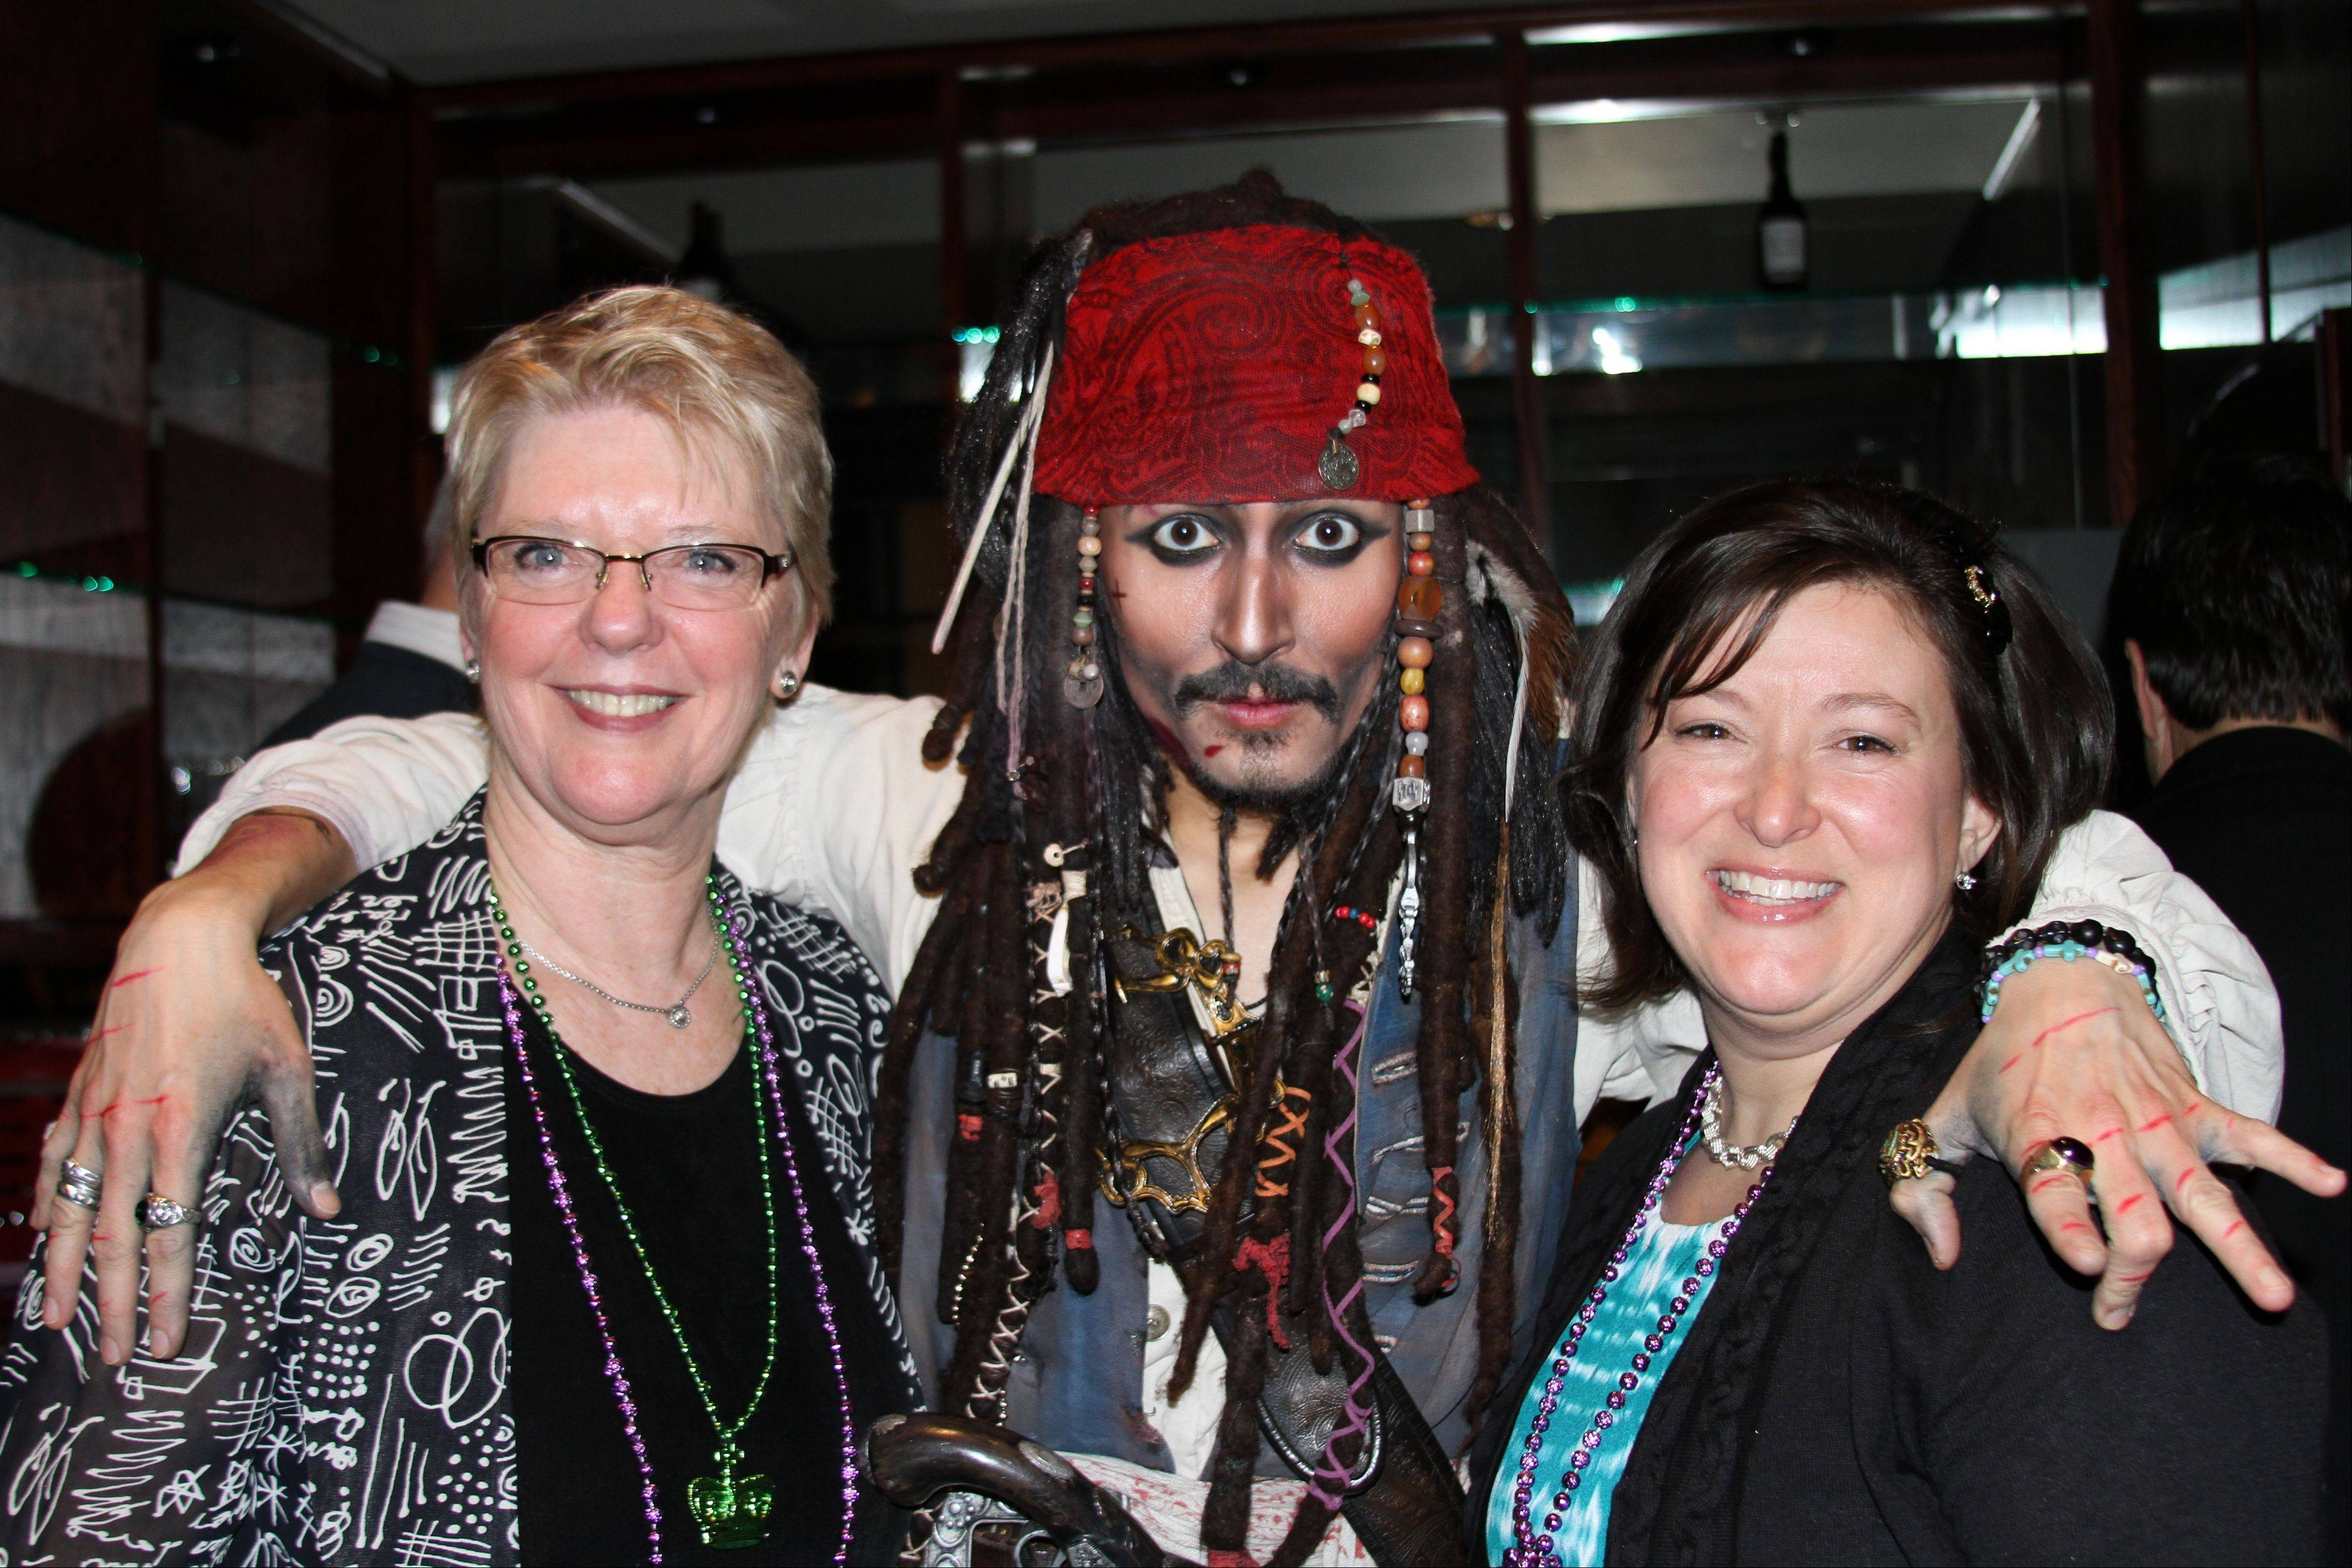 Foundation secretary Donna Anderson, Jack Sparrow impersonator Rick Aspen and District 54 board member Mary Kay Prusnick at the Schaumburg Township Elementary School Foundation's 12th annual Mardi Gras gala.